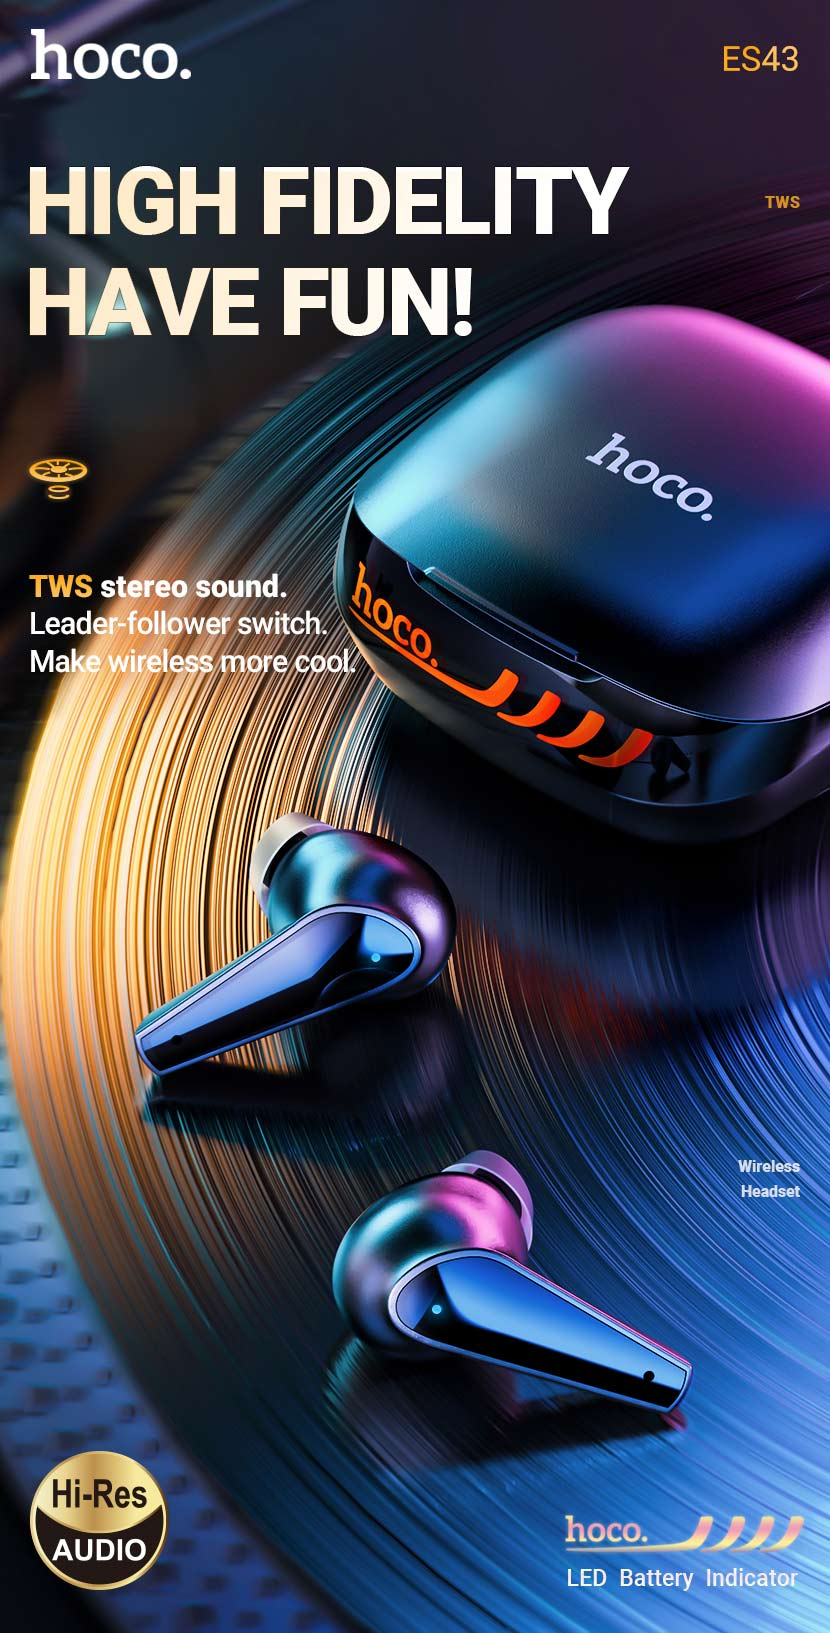 hoco news es43 lucky sound tws wireless headset fidelity en